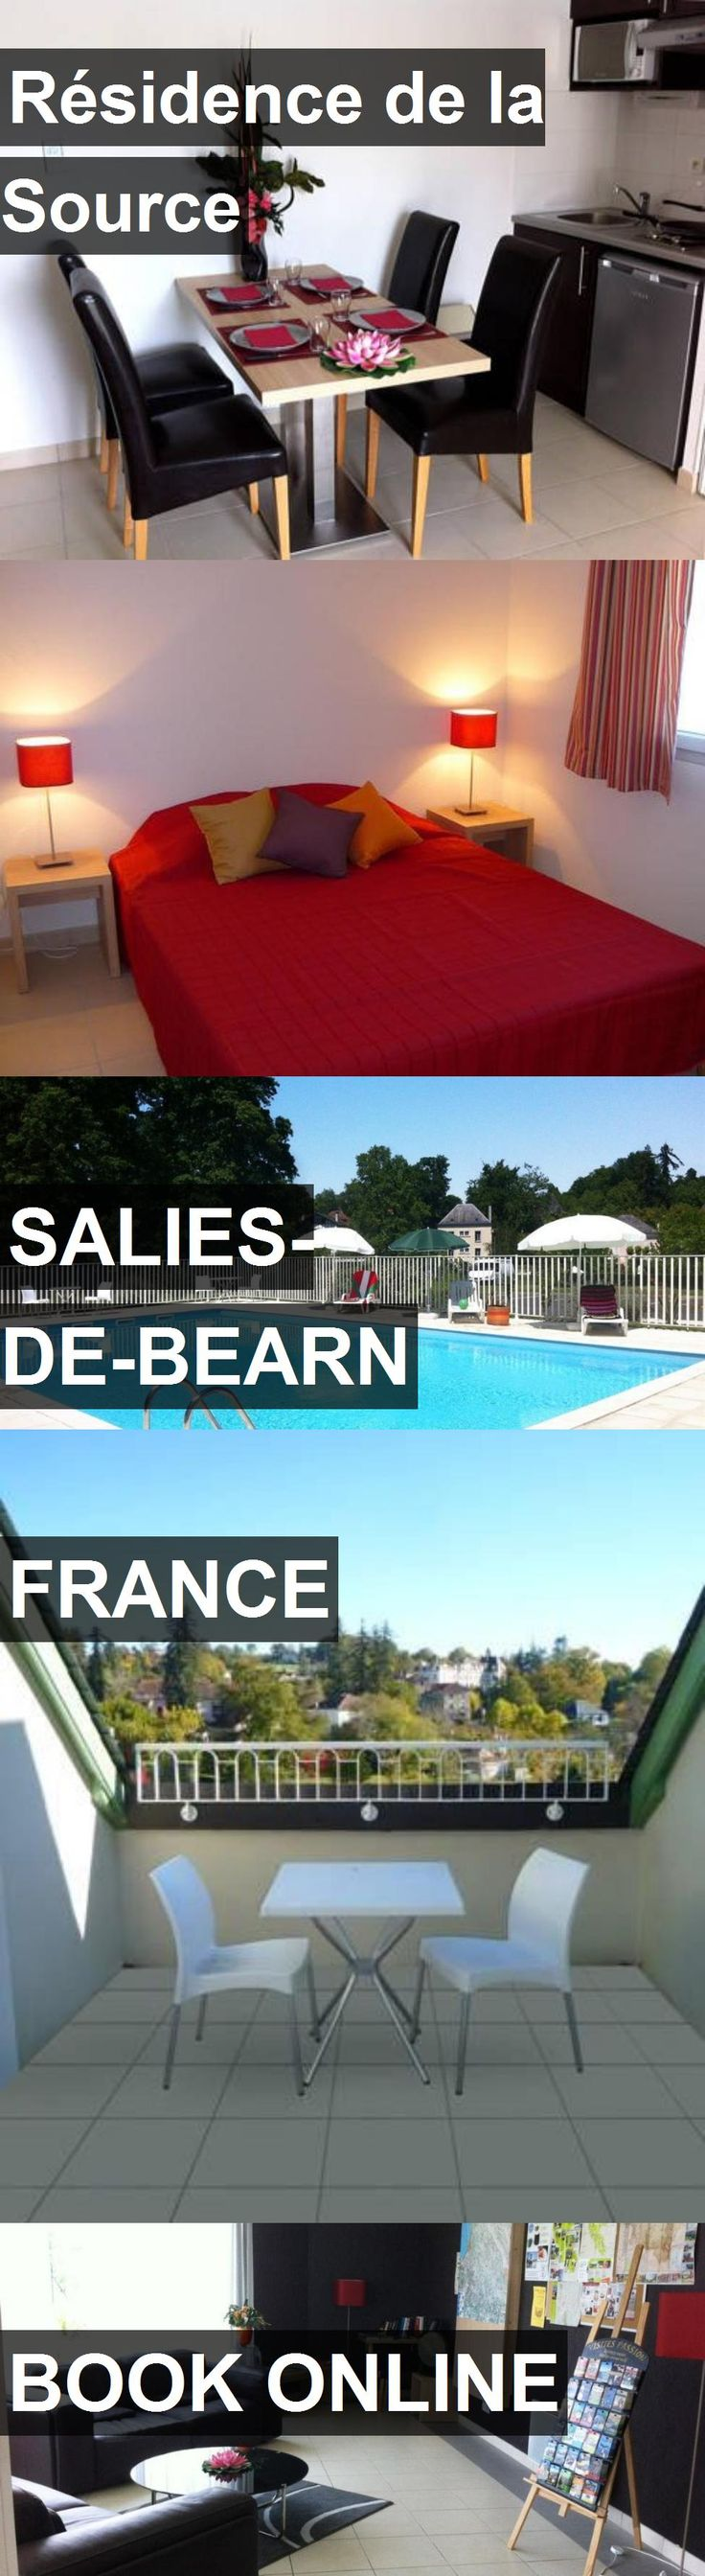 Hotel Résidence de la Source in Salies-de-Bearn, France. For more information, photos, reviews and best prices please follow the link. #France #Salies-de-Bearn #travel #vacation #hotel